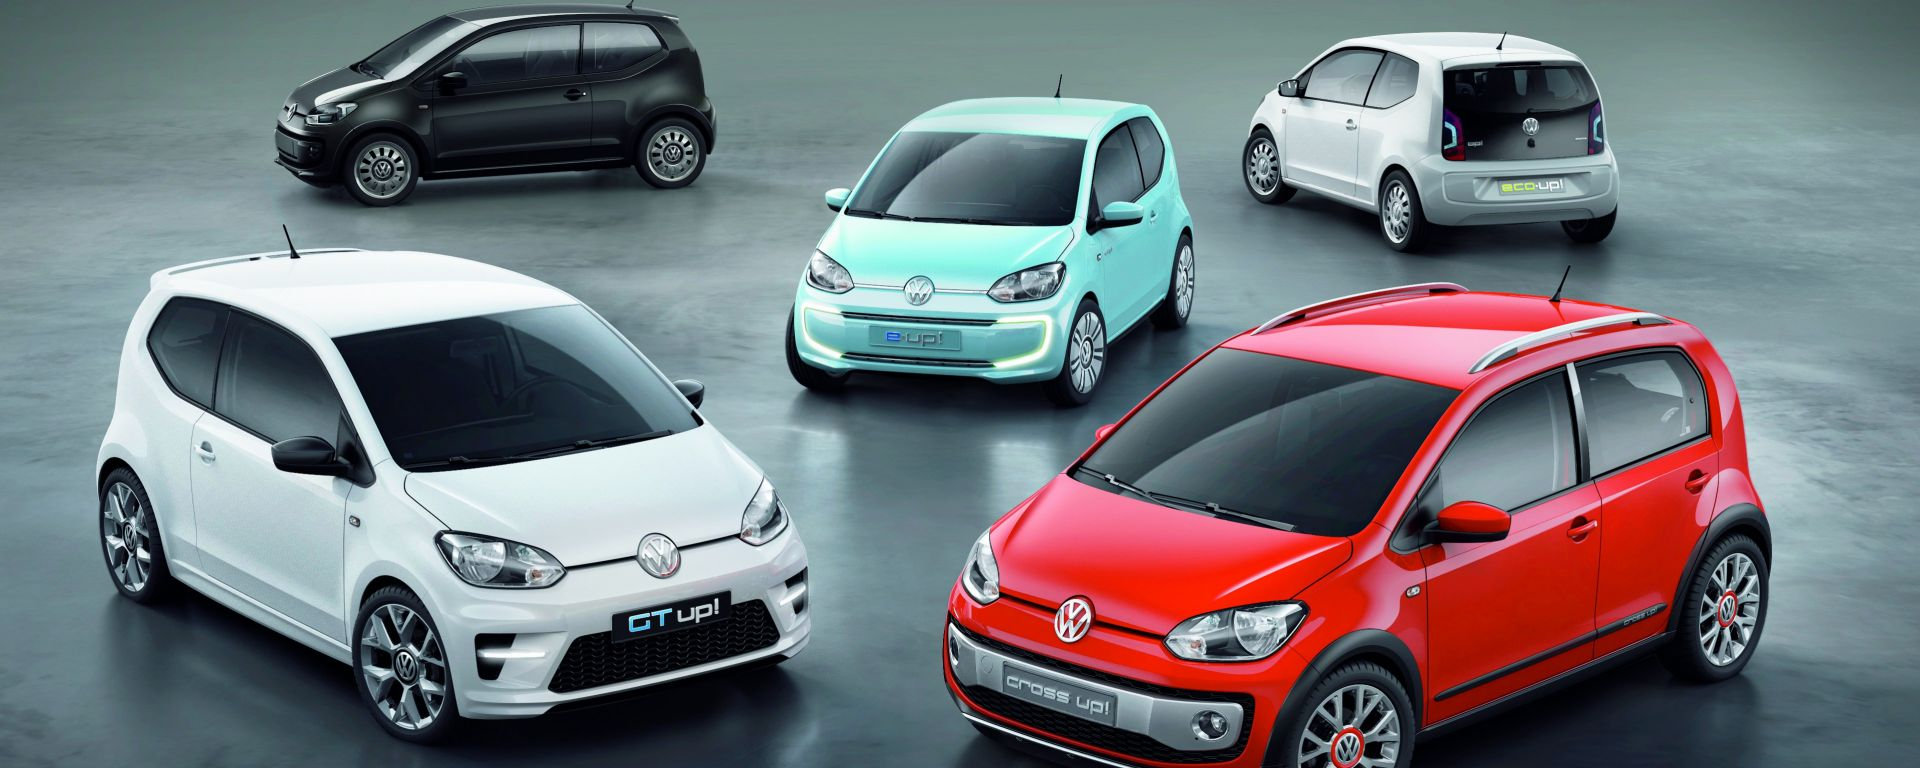 La Volkswagen up! e le sue sorelle